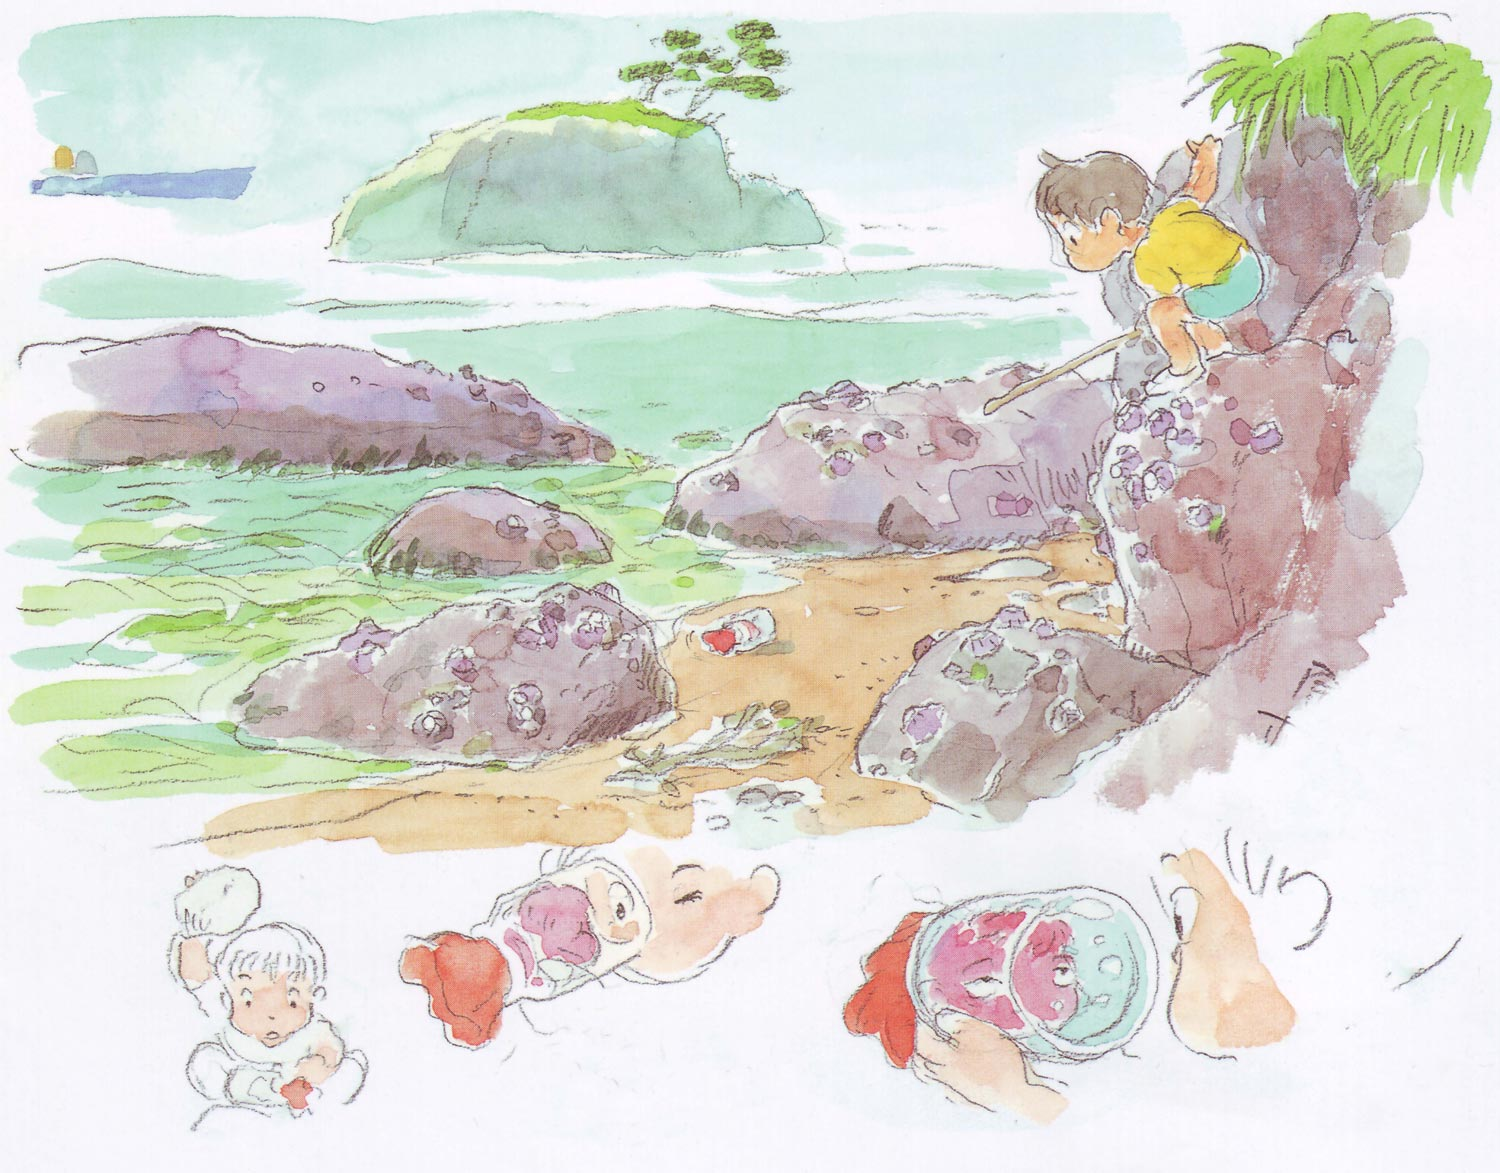 ponyo_on_the_cliff_by_the_sea_artwork_color_key__25.jpg